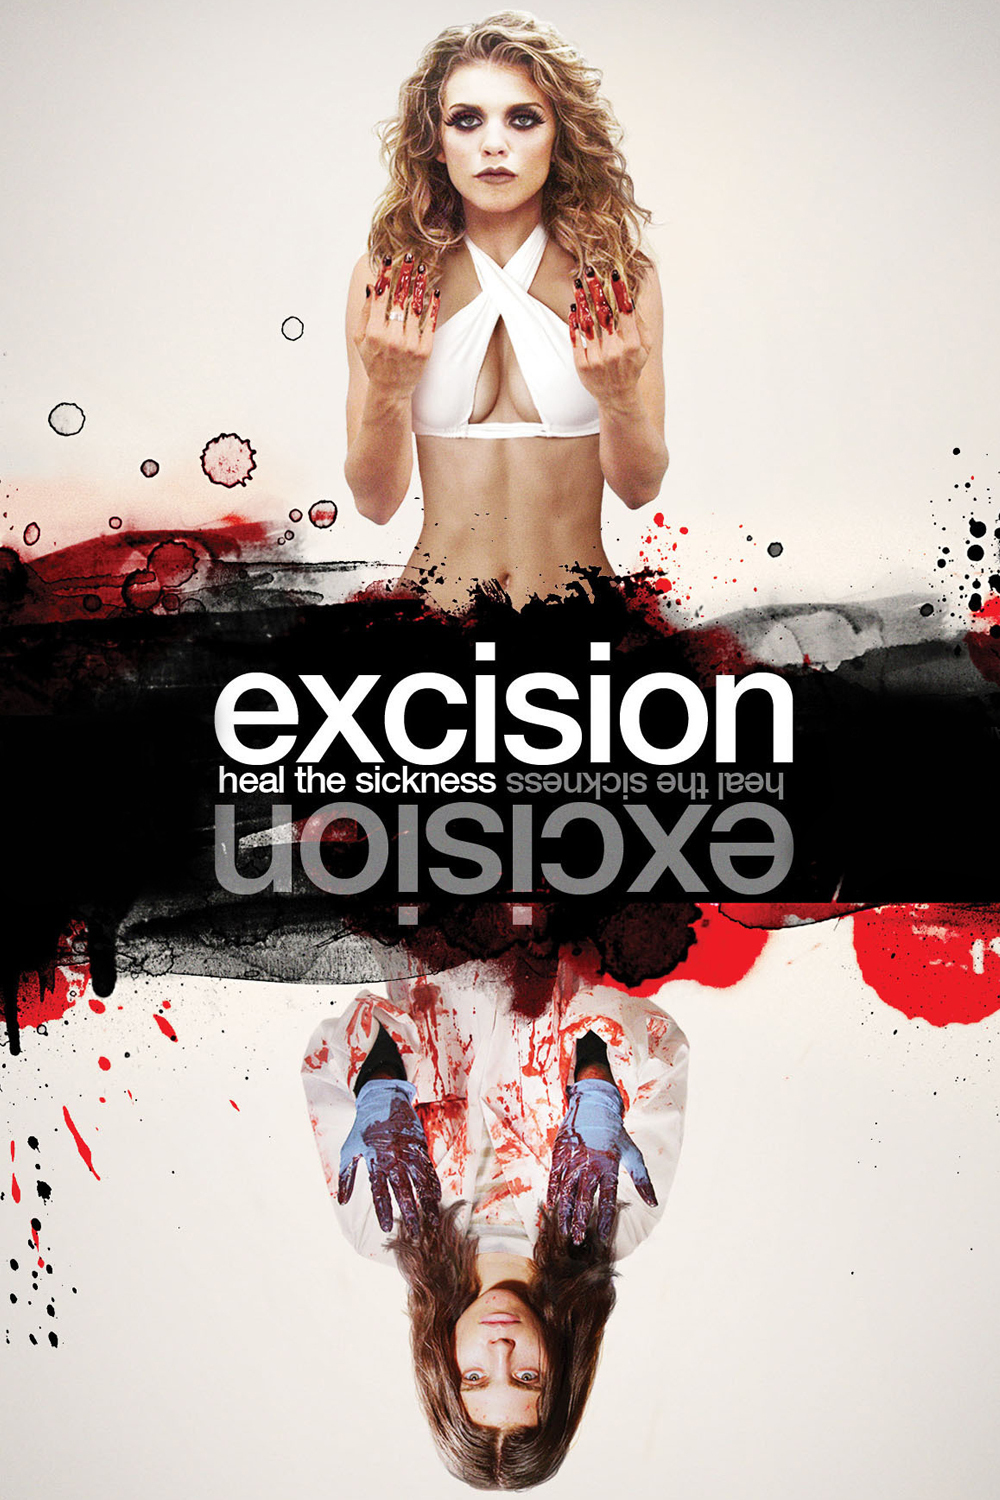 Twisted Movie - Excision